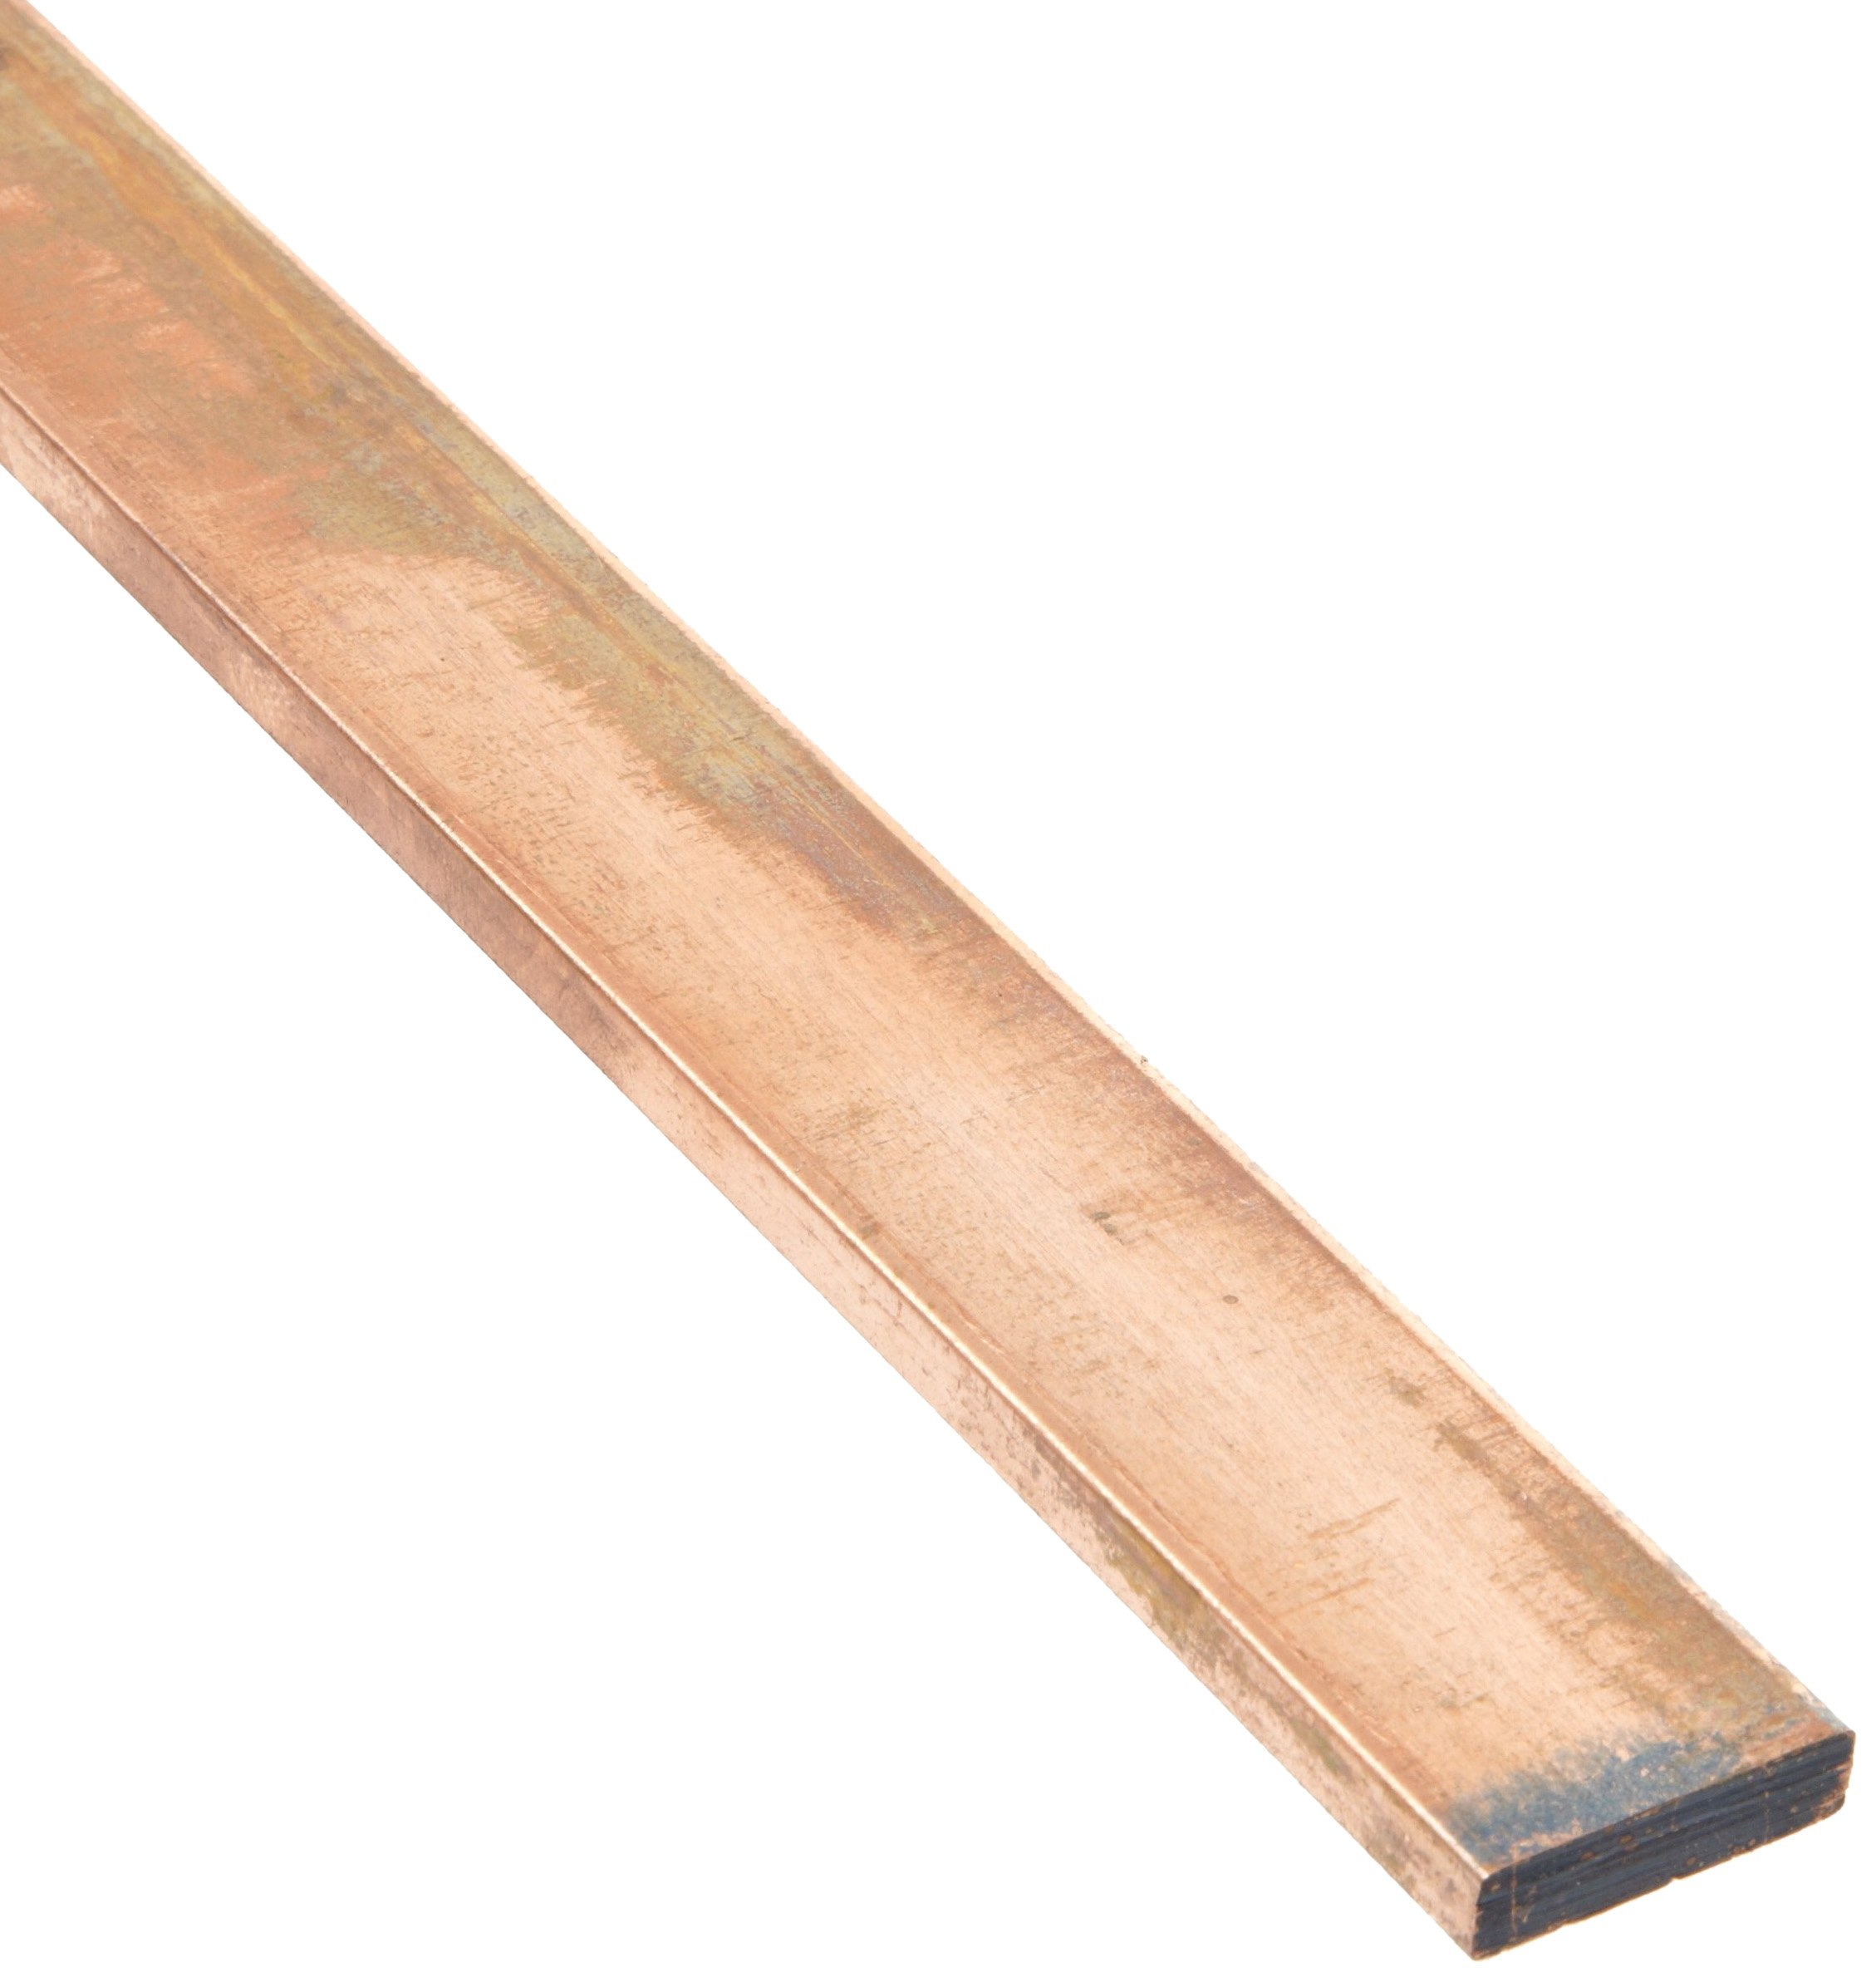 """110 Copper Rectangular Bar, Unpolished (Mill) Finish, H04 Temper, ASTM B187, 1/2"""" Thickness, 3/4"""" Width, 36"""" Length"""